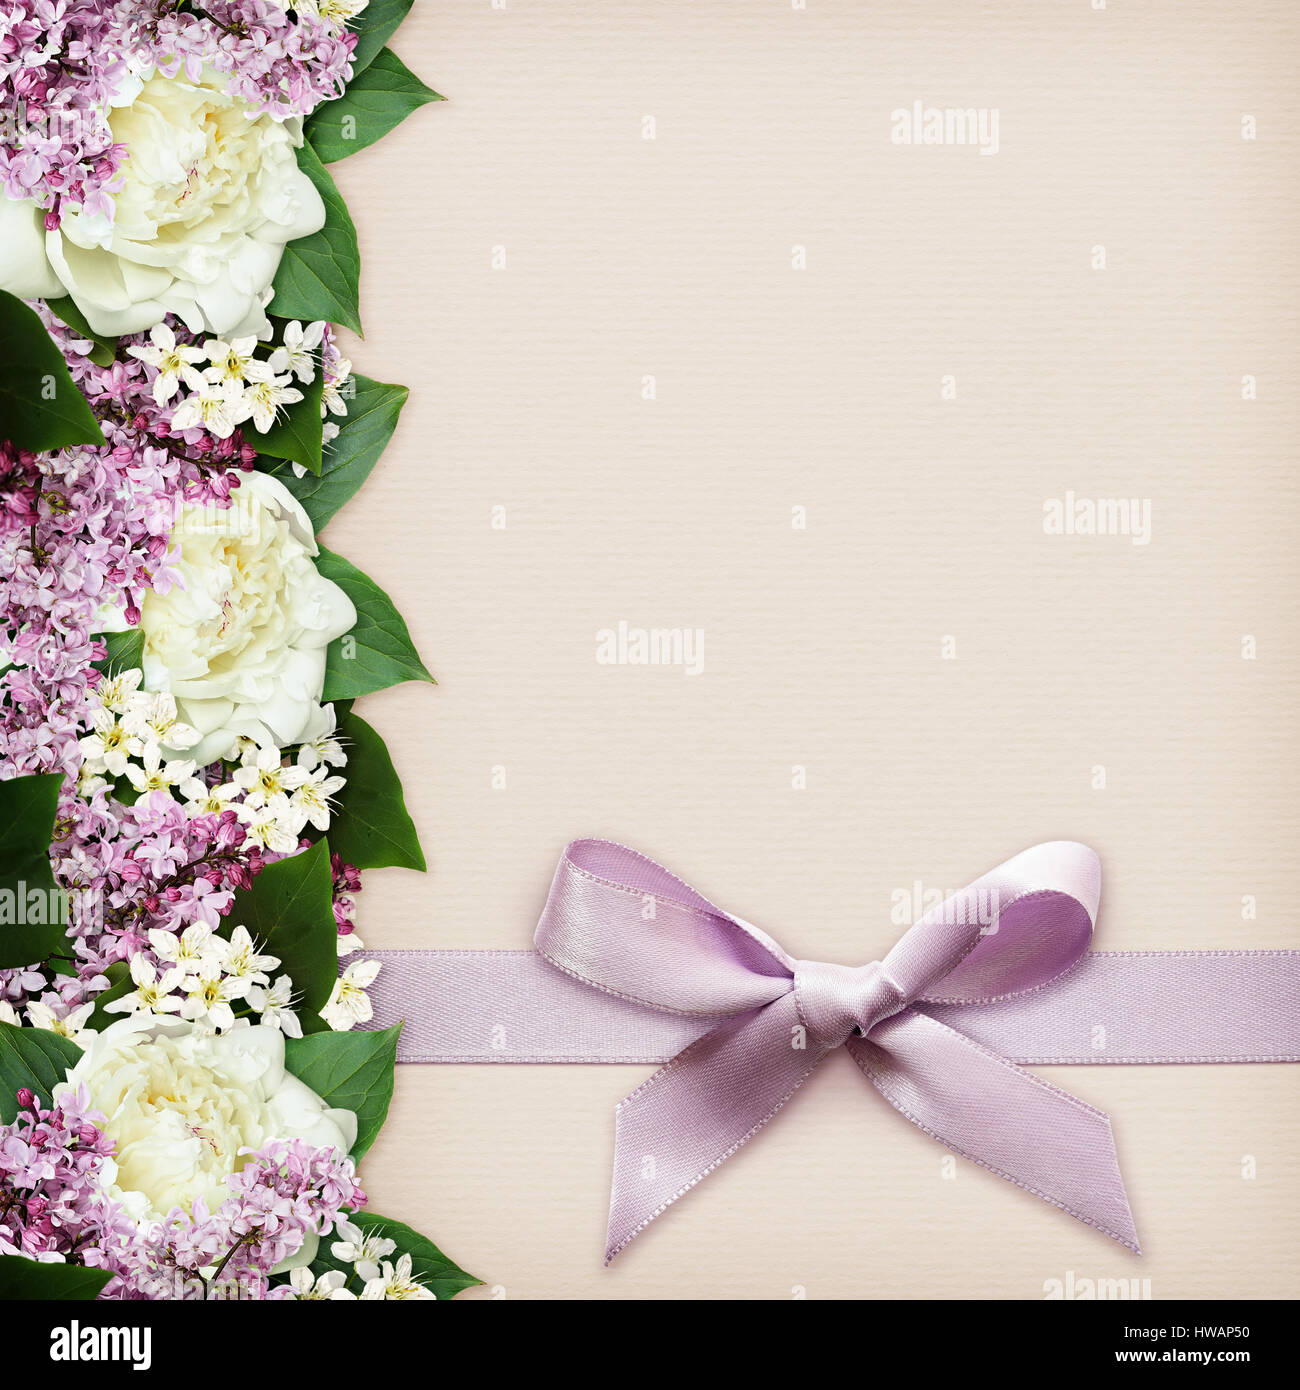 Flowers On Paper Stock Photos Flowers On Paper Stock Images Alamy